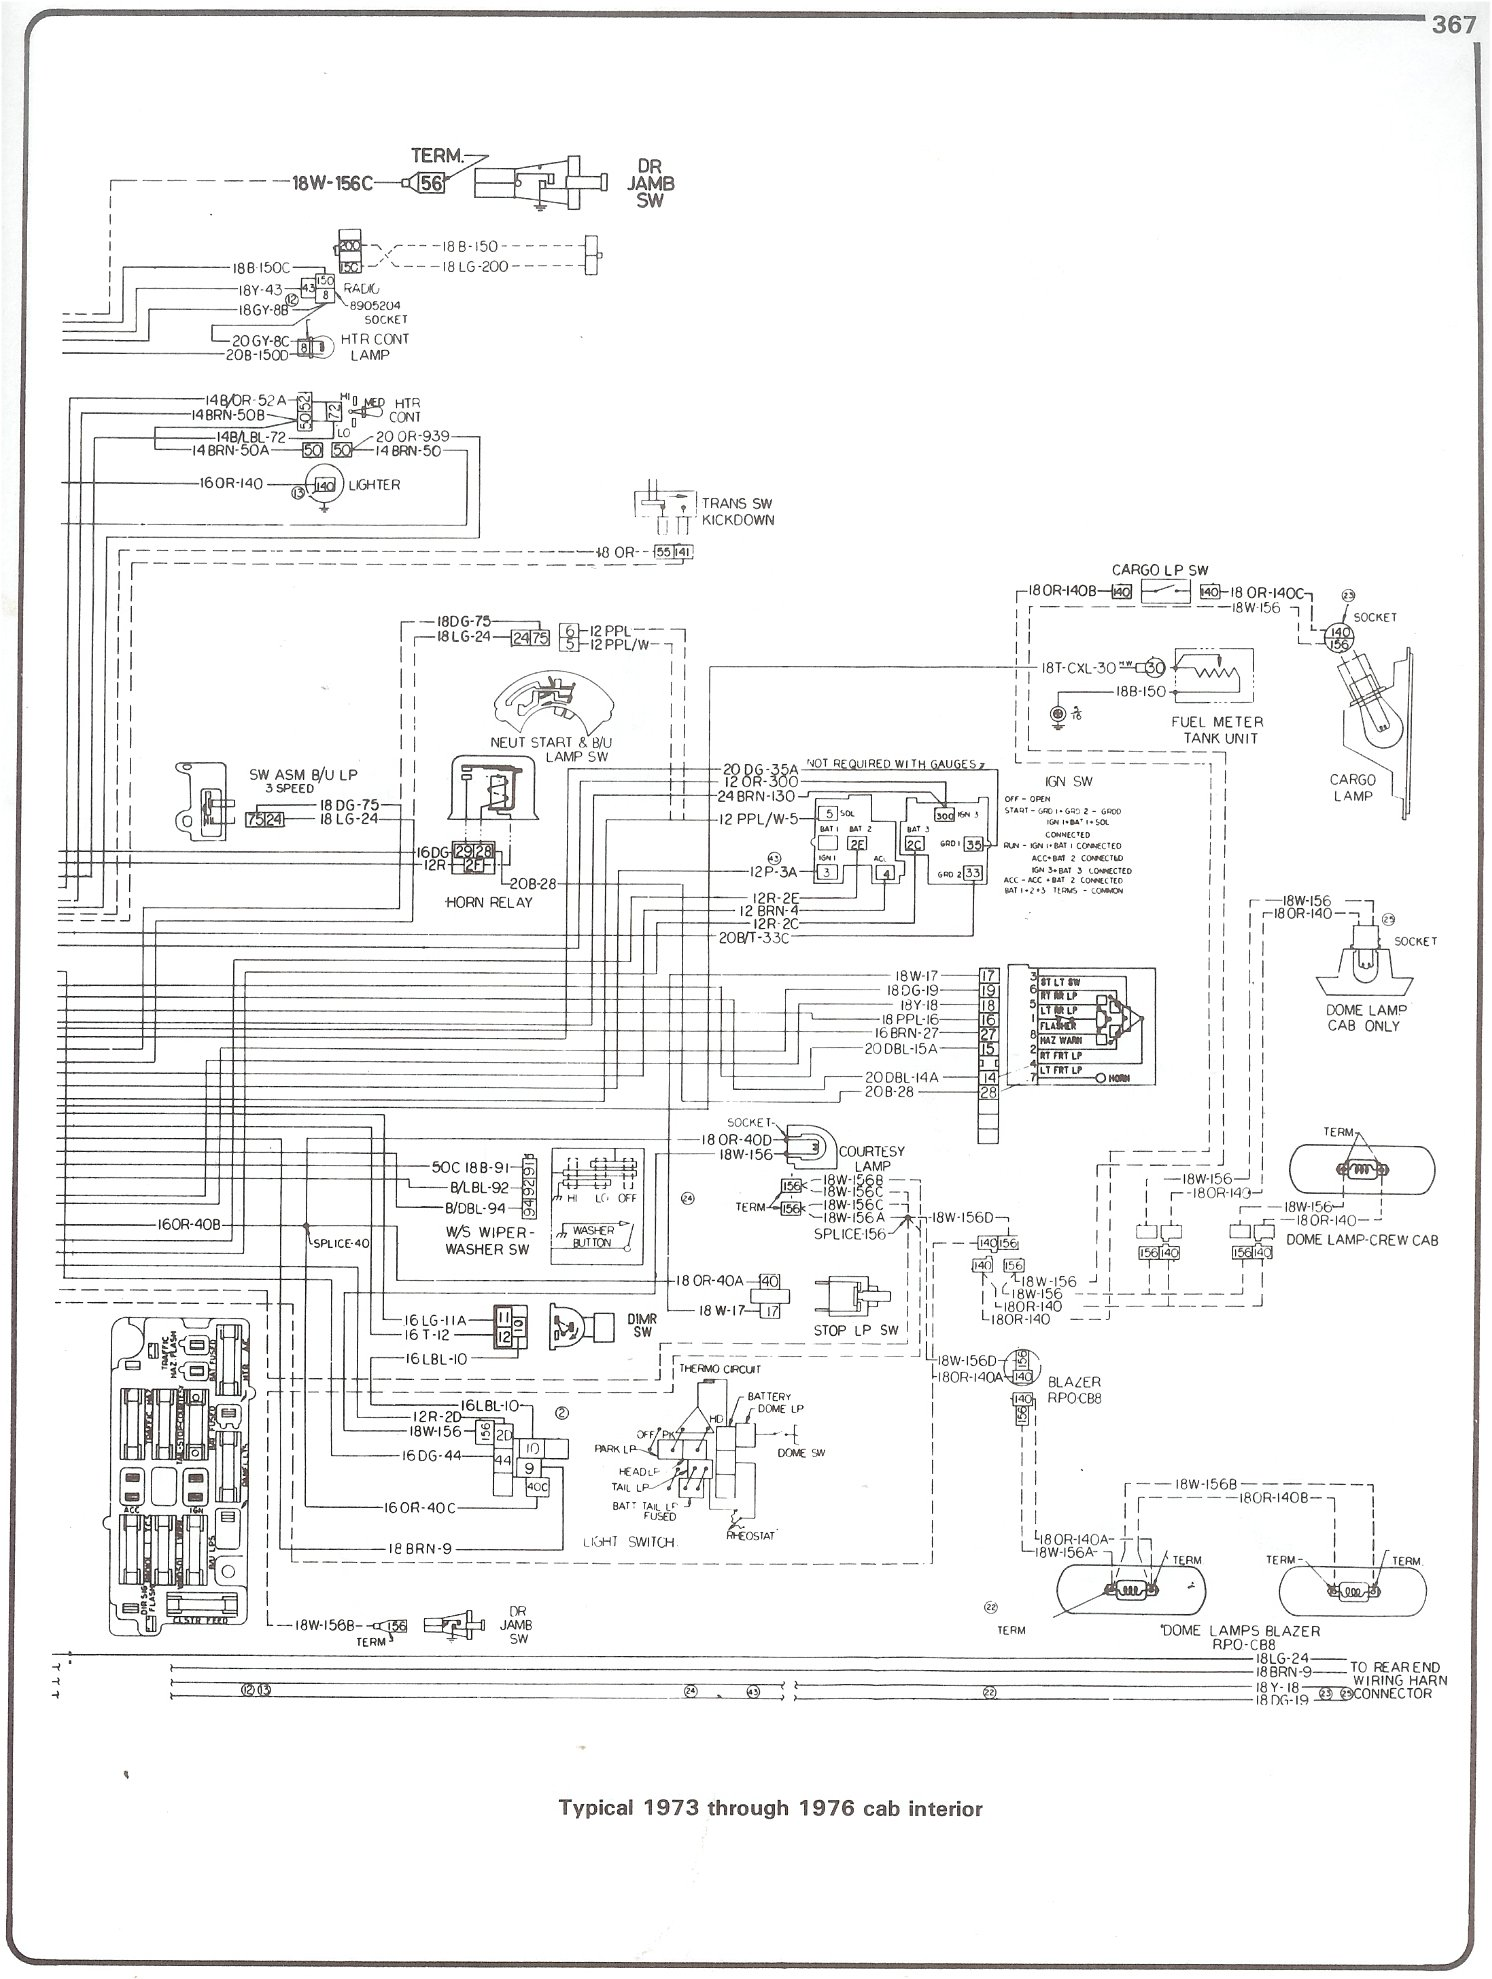 complete 73 87 wiring diagrams Specs for Chevy Trucks